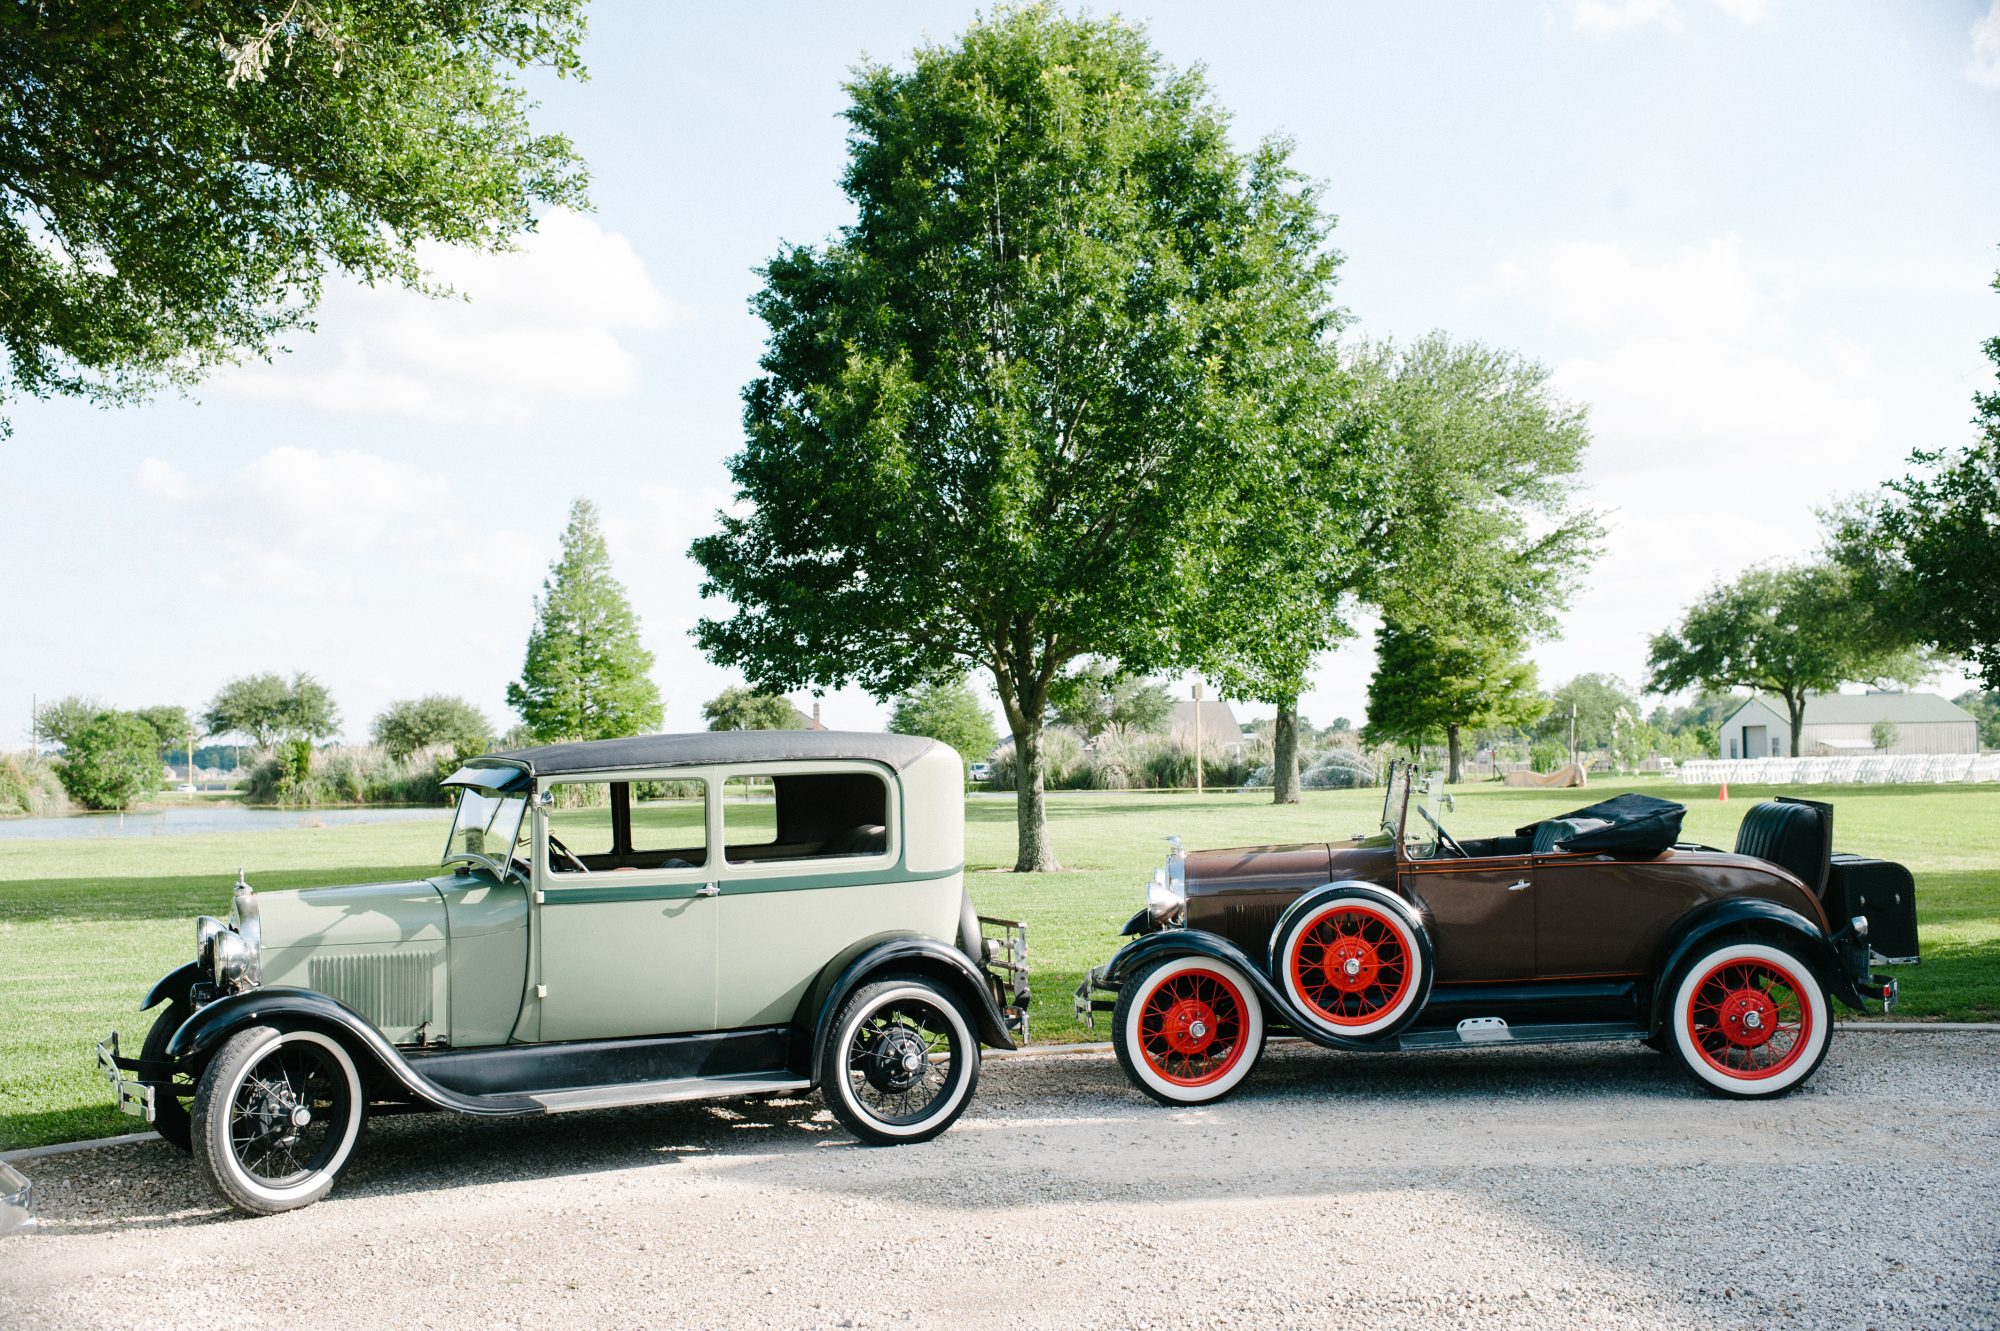 The Vintage Cars